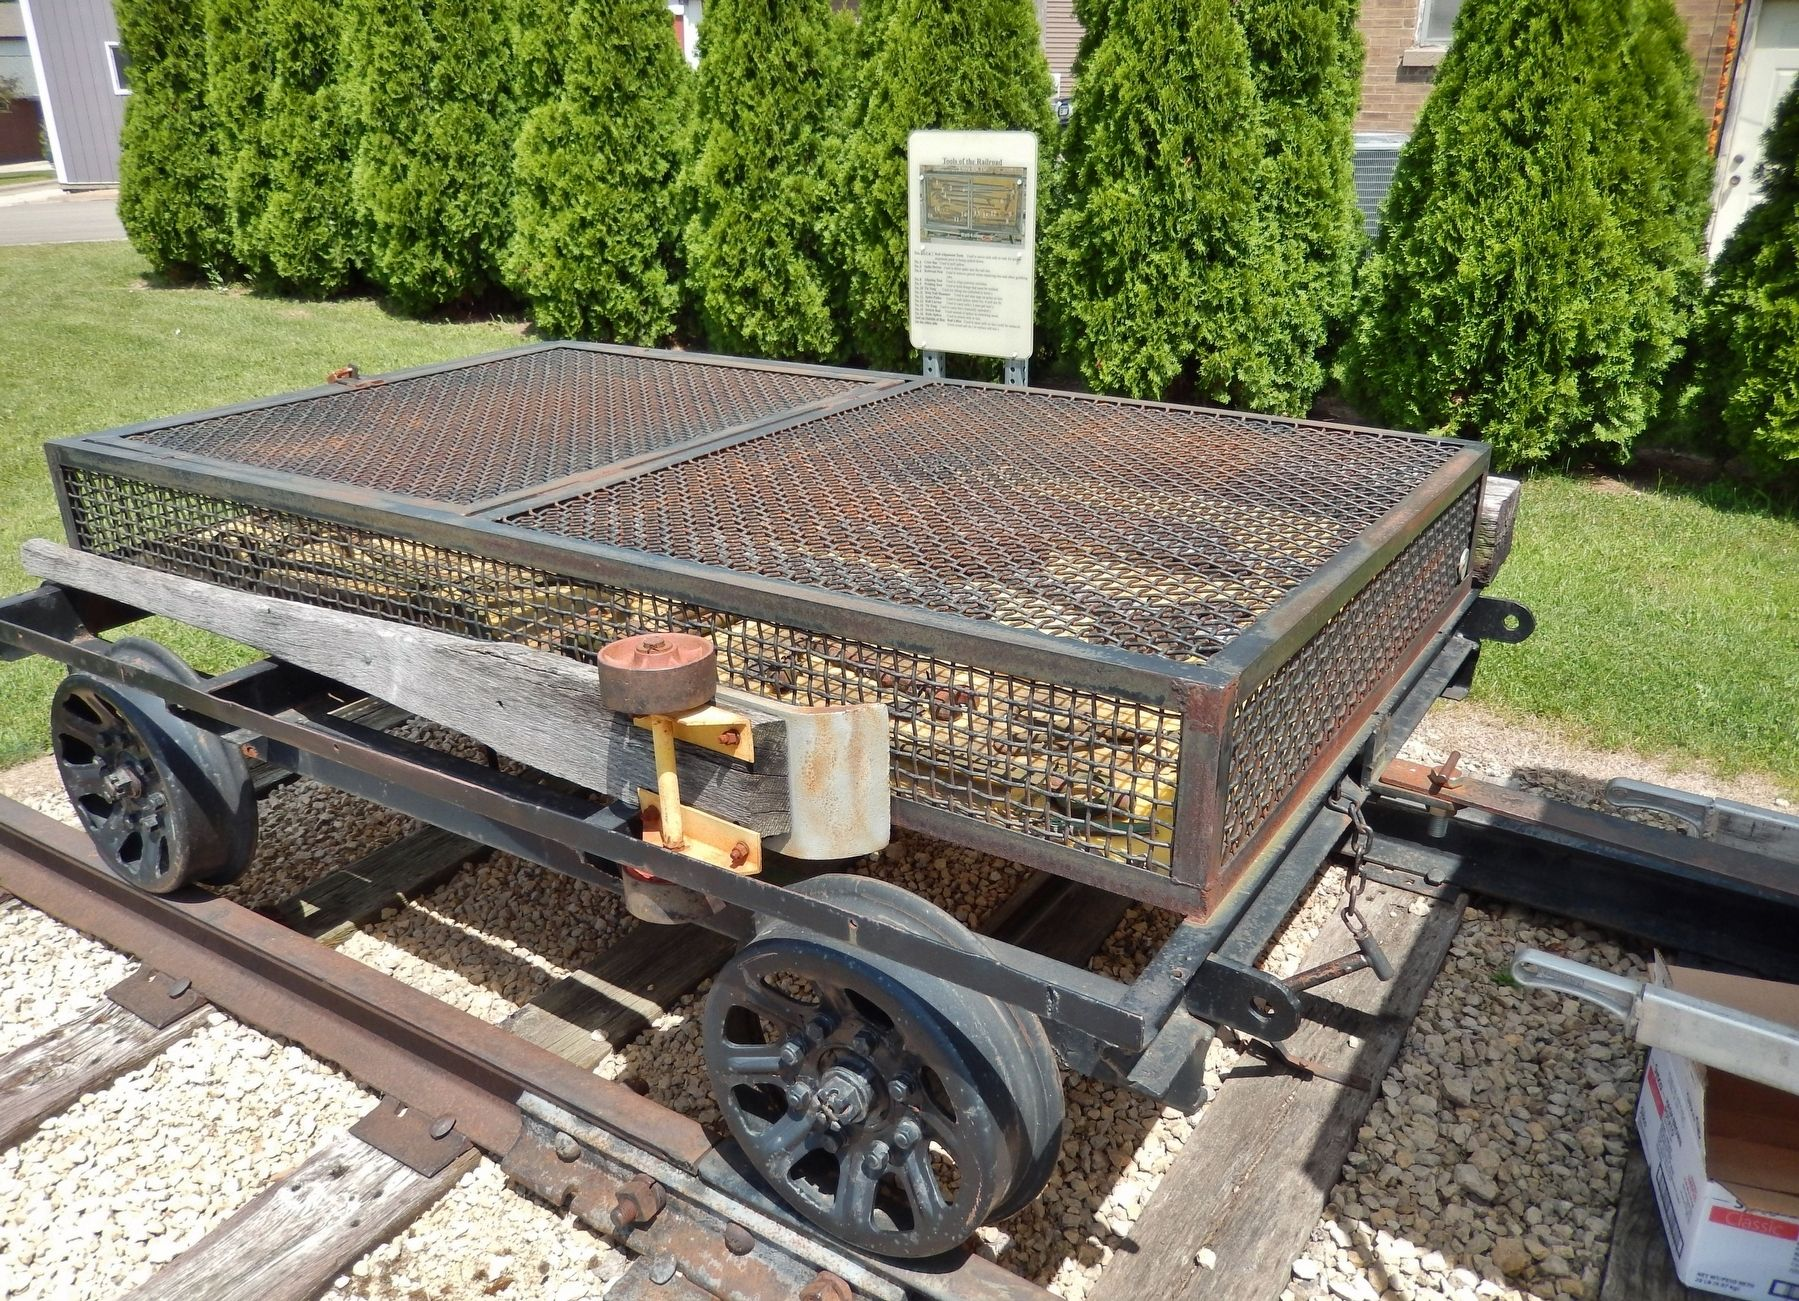 Railroad Tool Trailer image. Click for full size.